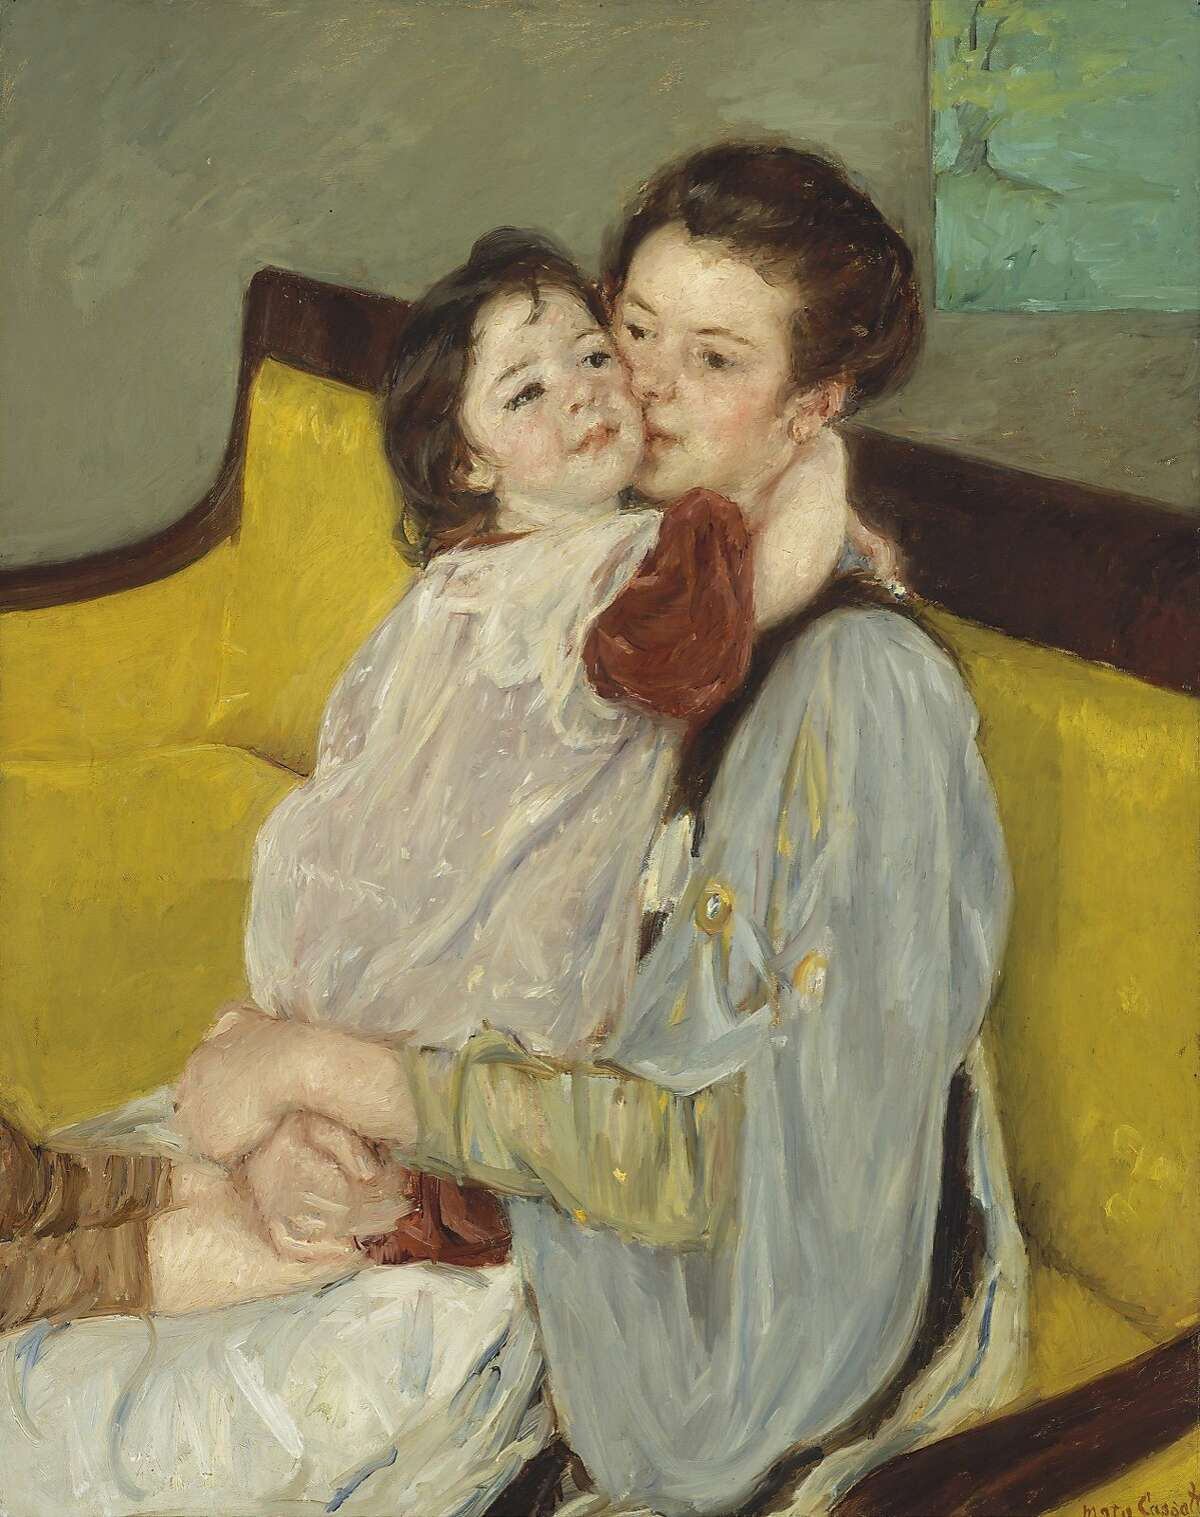 Maternal Caress (Caresse maternelle), approx. 1902, by Mary Stevenson Cassatt (American, 1844Ð1926). Oil on canvas. Museum of Fine Arts, Boston, Gift of Miss Aimee Lamb in memory of Mr. and Mrs. Horatio Appleton Lamb, 1970.252. Photograph © 2015, MFA, Boston